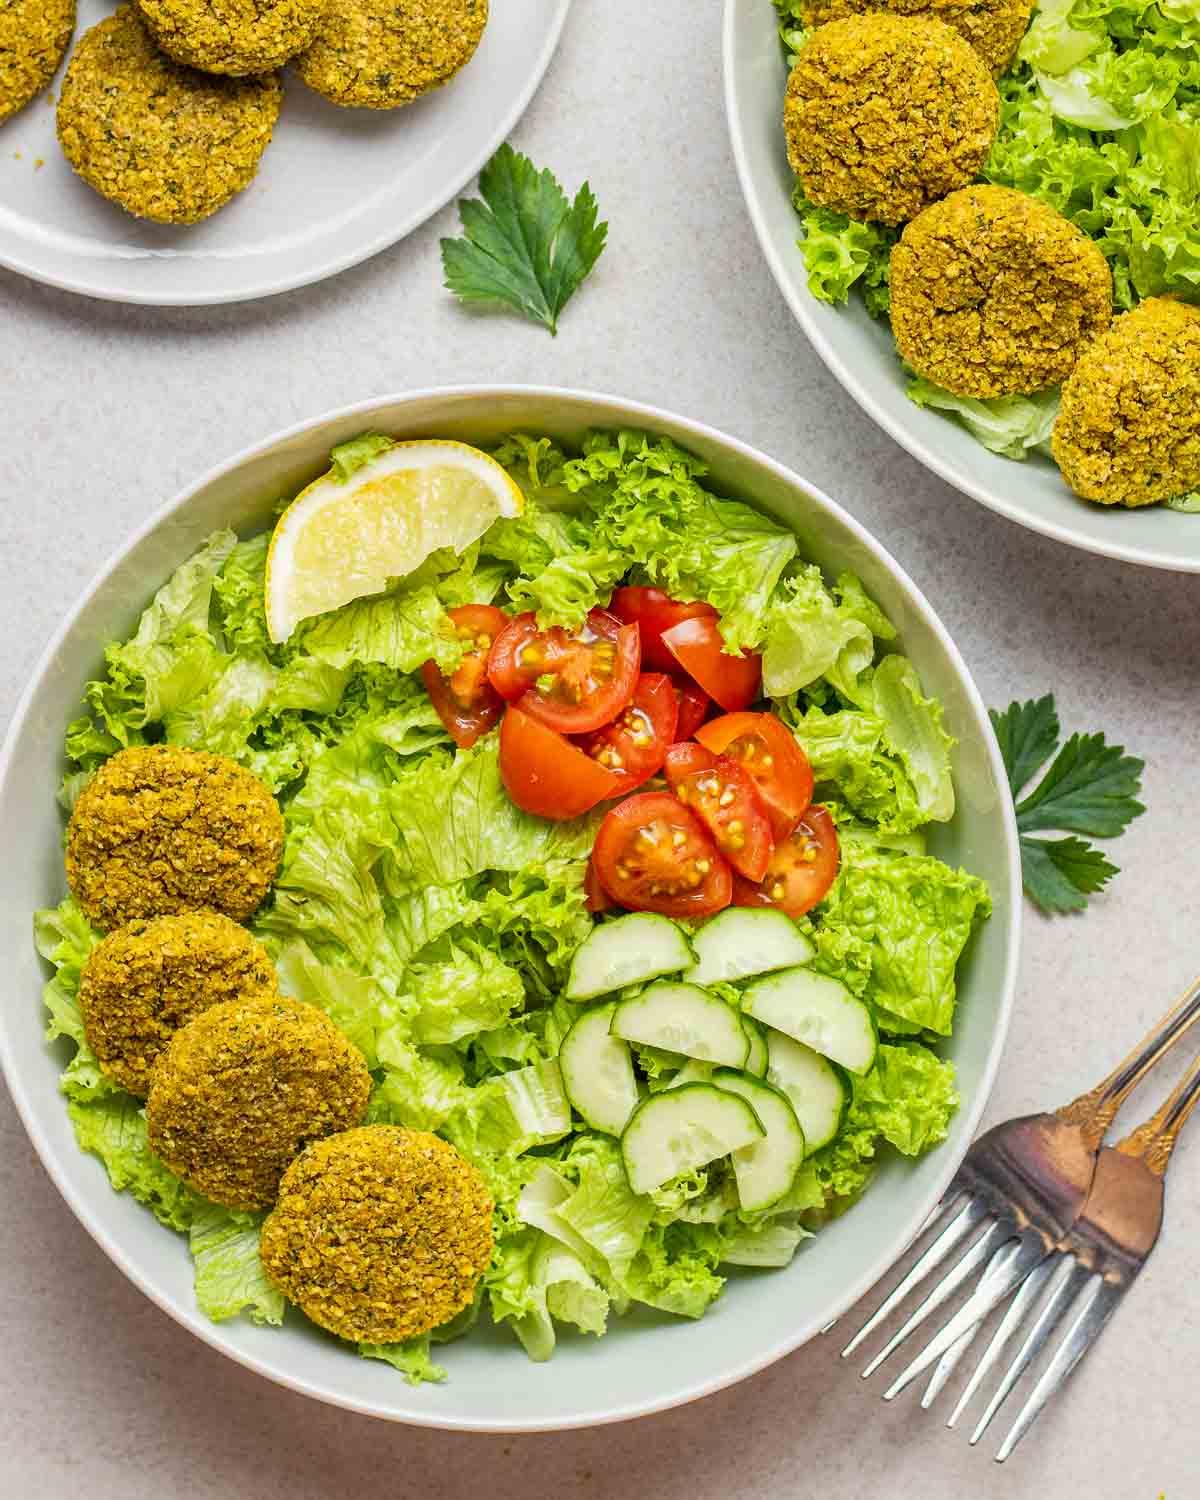 4 falafels served on a bed of greens along with diced tomatoes, cucumbers and a lemon wedge with forks beside.